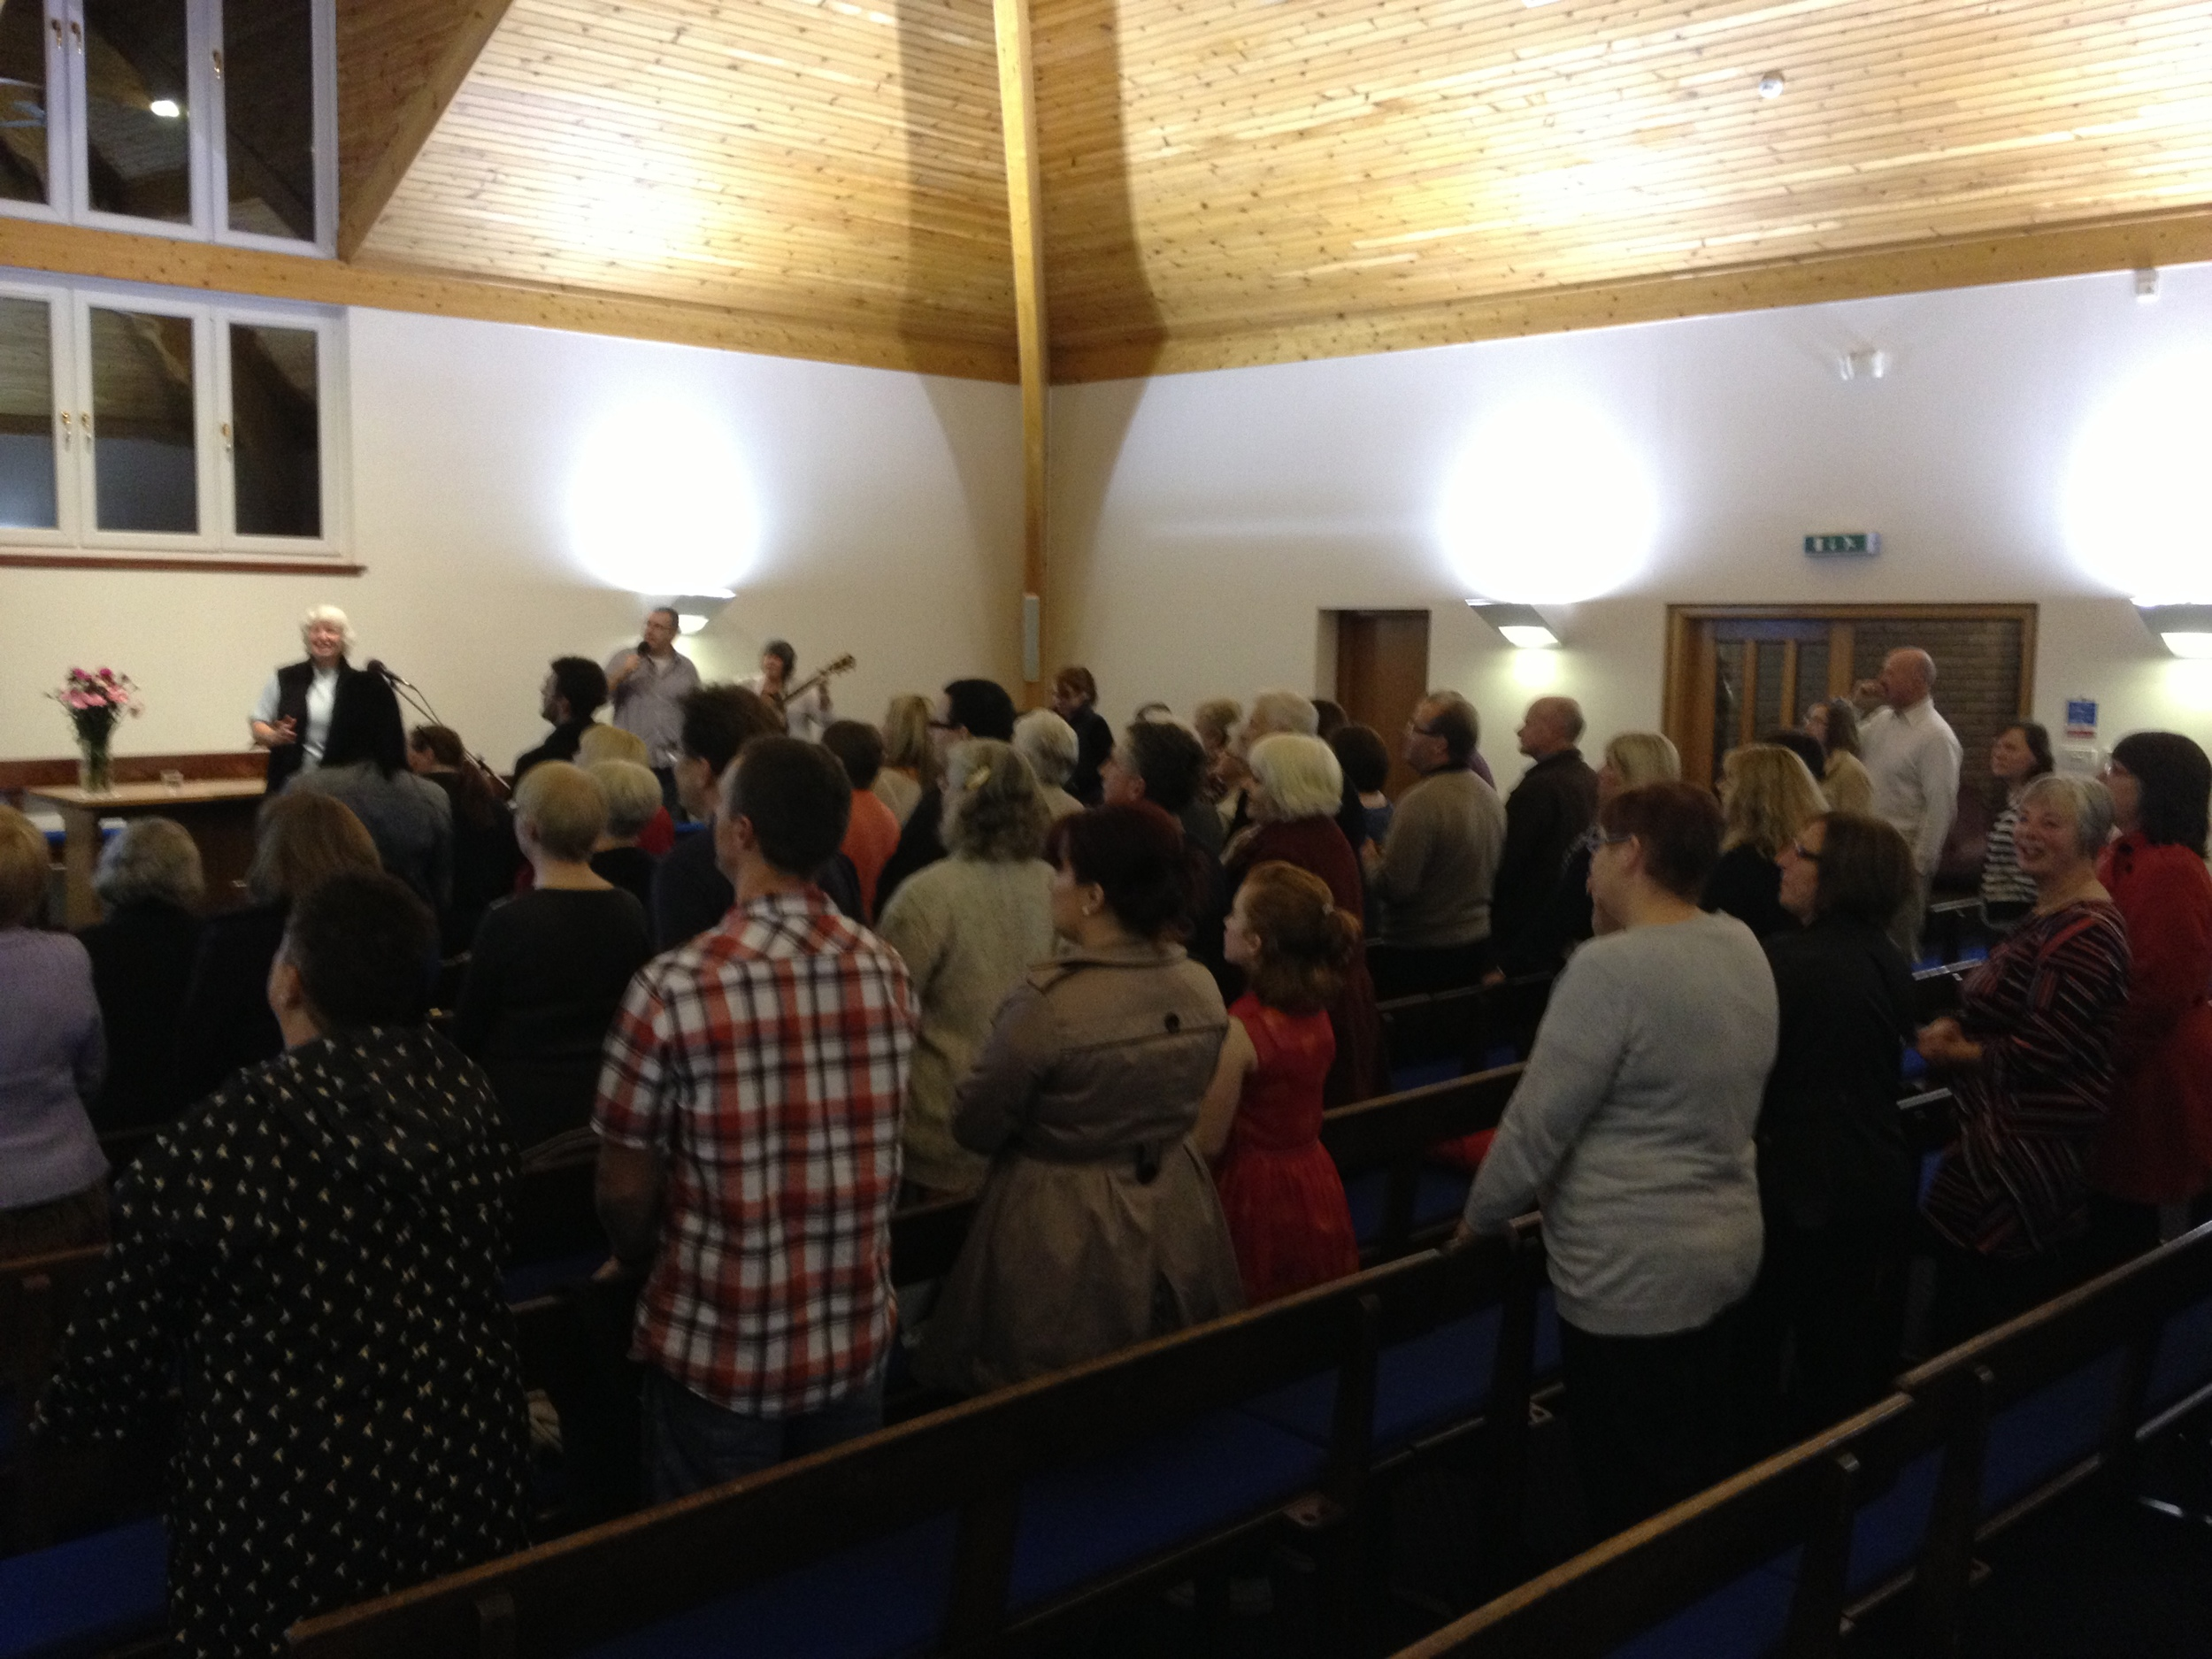 Visitors remarked on how much they enjoyed the service at the end of the evening.